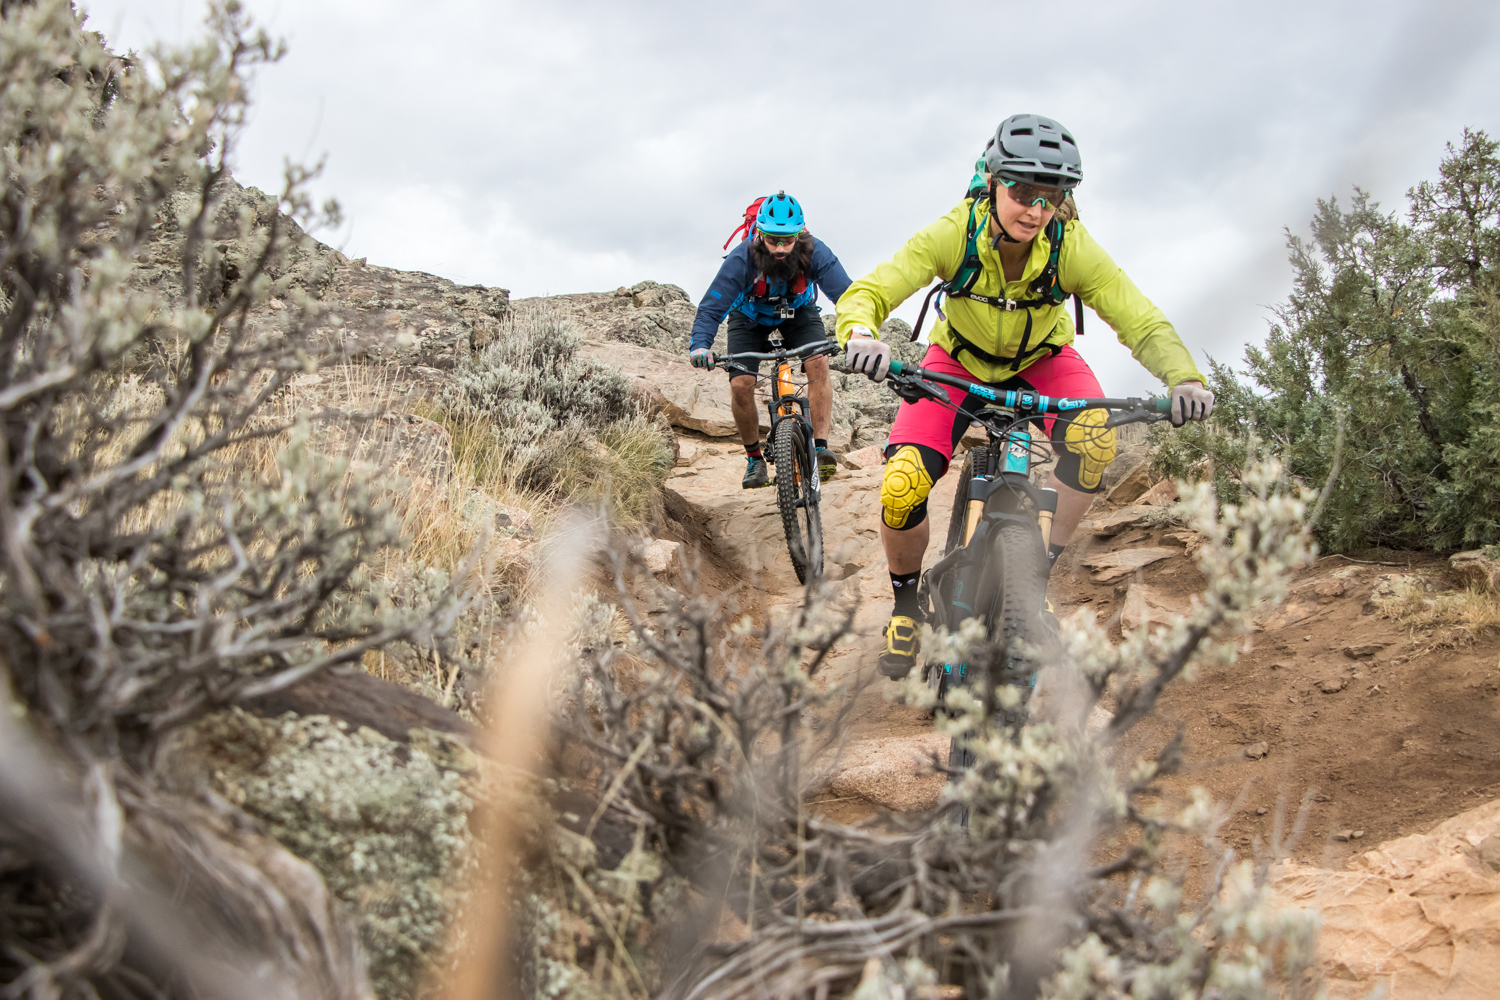 MILES AND MILES OF EPIC SINGLETRACK